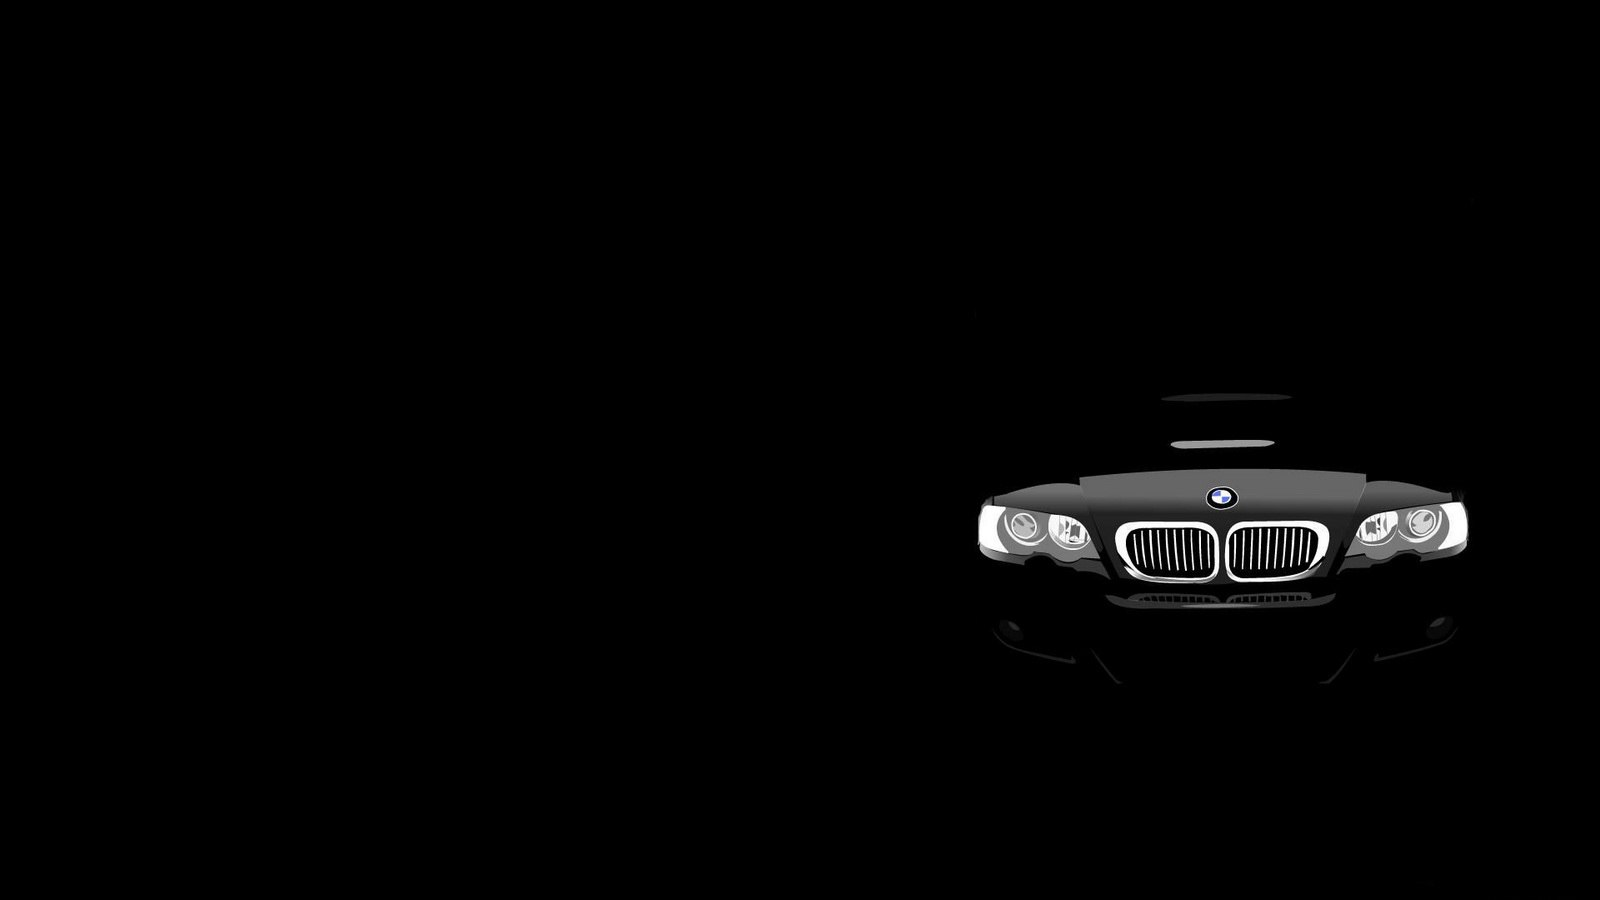 Bmw Cars Hd Wallpapers Free Download 1600x900